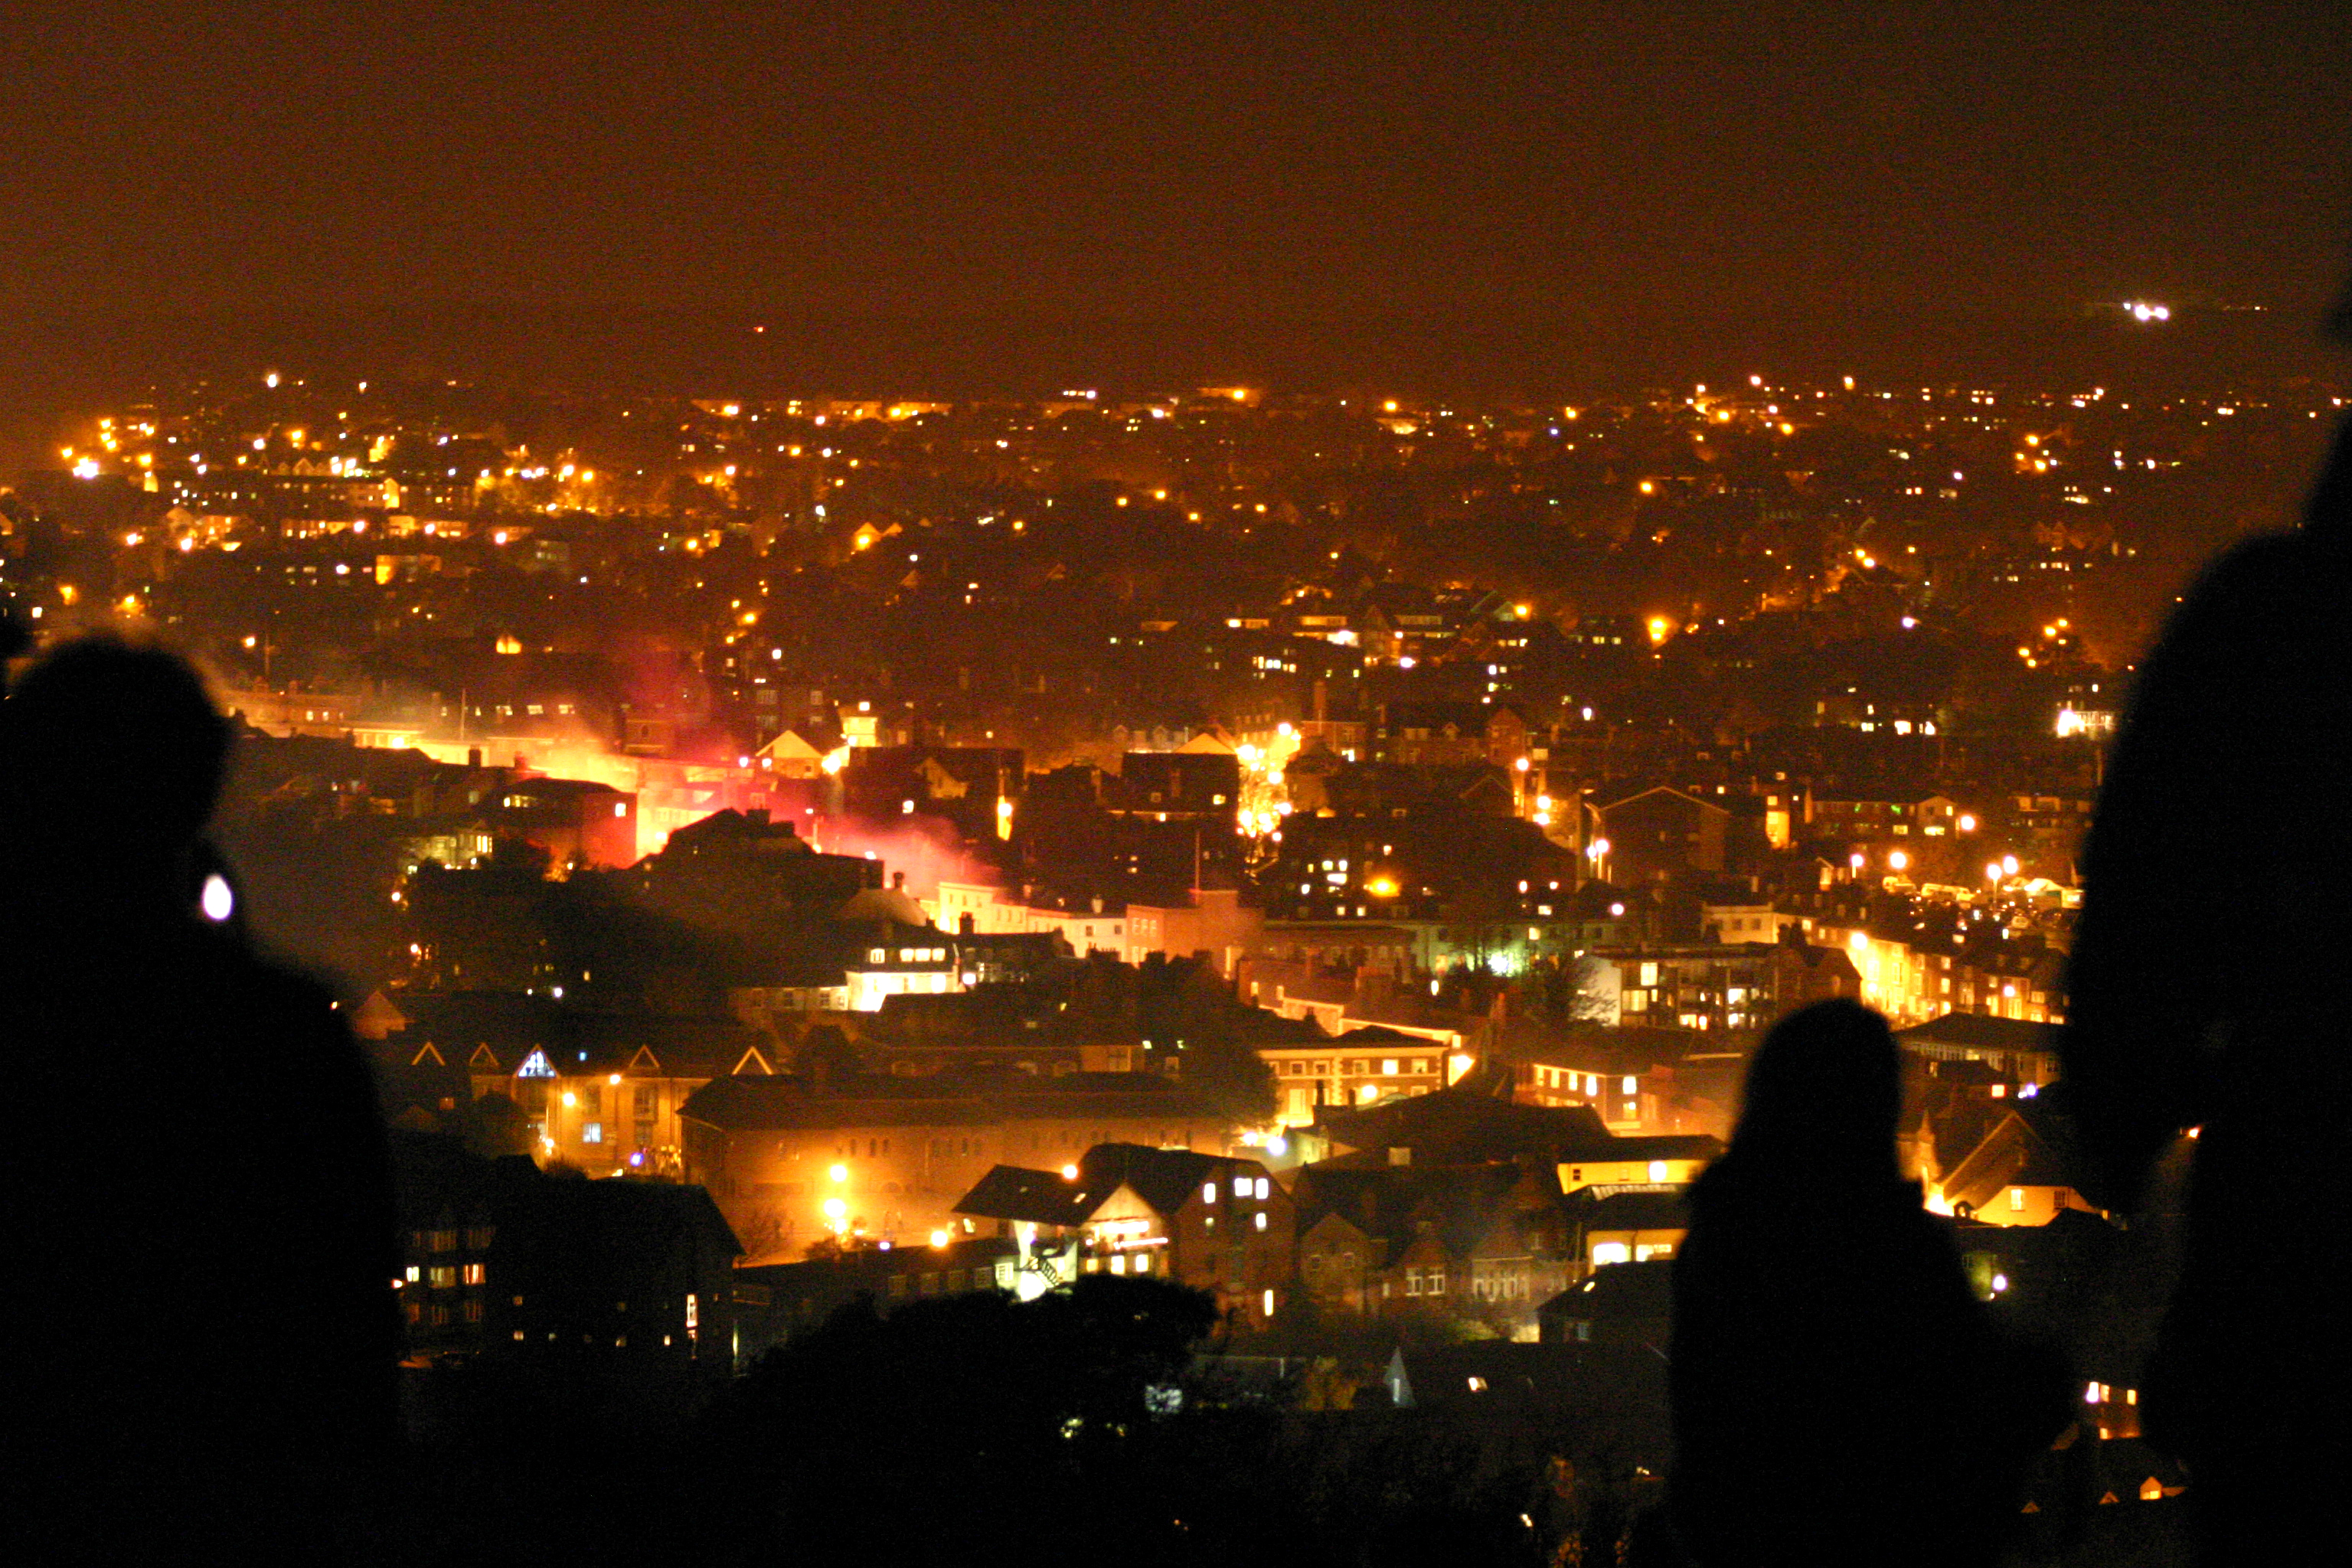 https://upload.wikimedia.org/wikipedia/commons/e/e3/Lewes_Bonfire_Night_2007_-_Burning_Town_and_Hillside_Watchers2.jpg